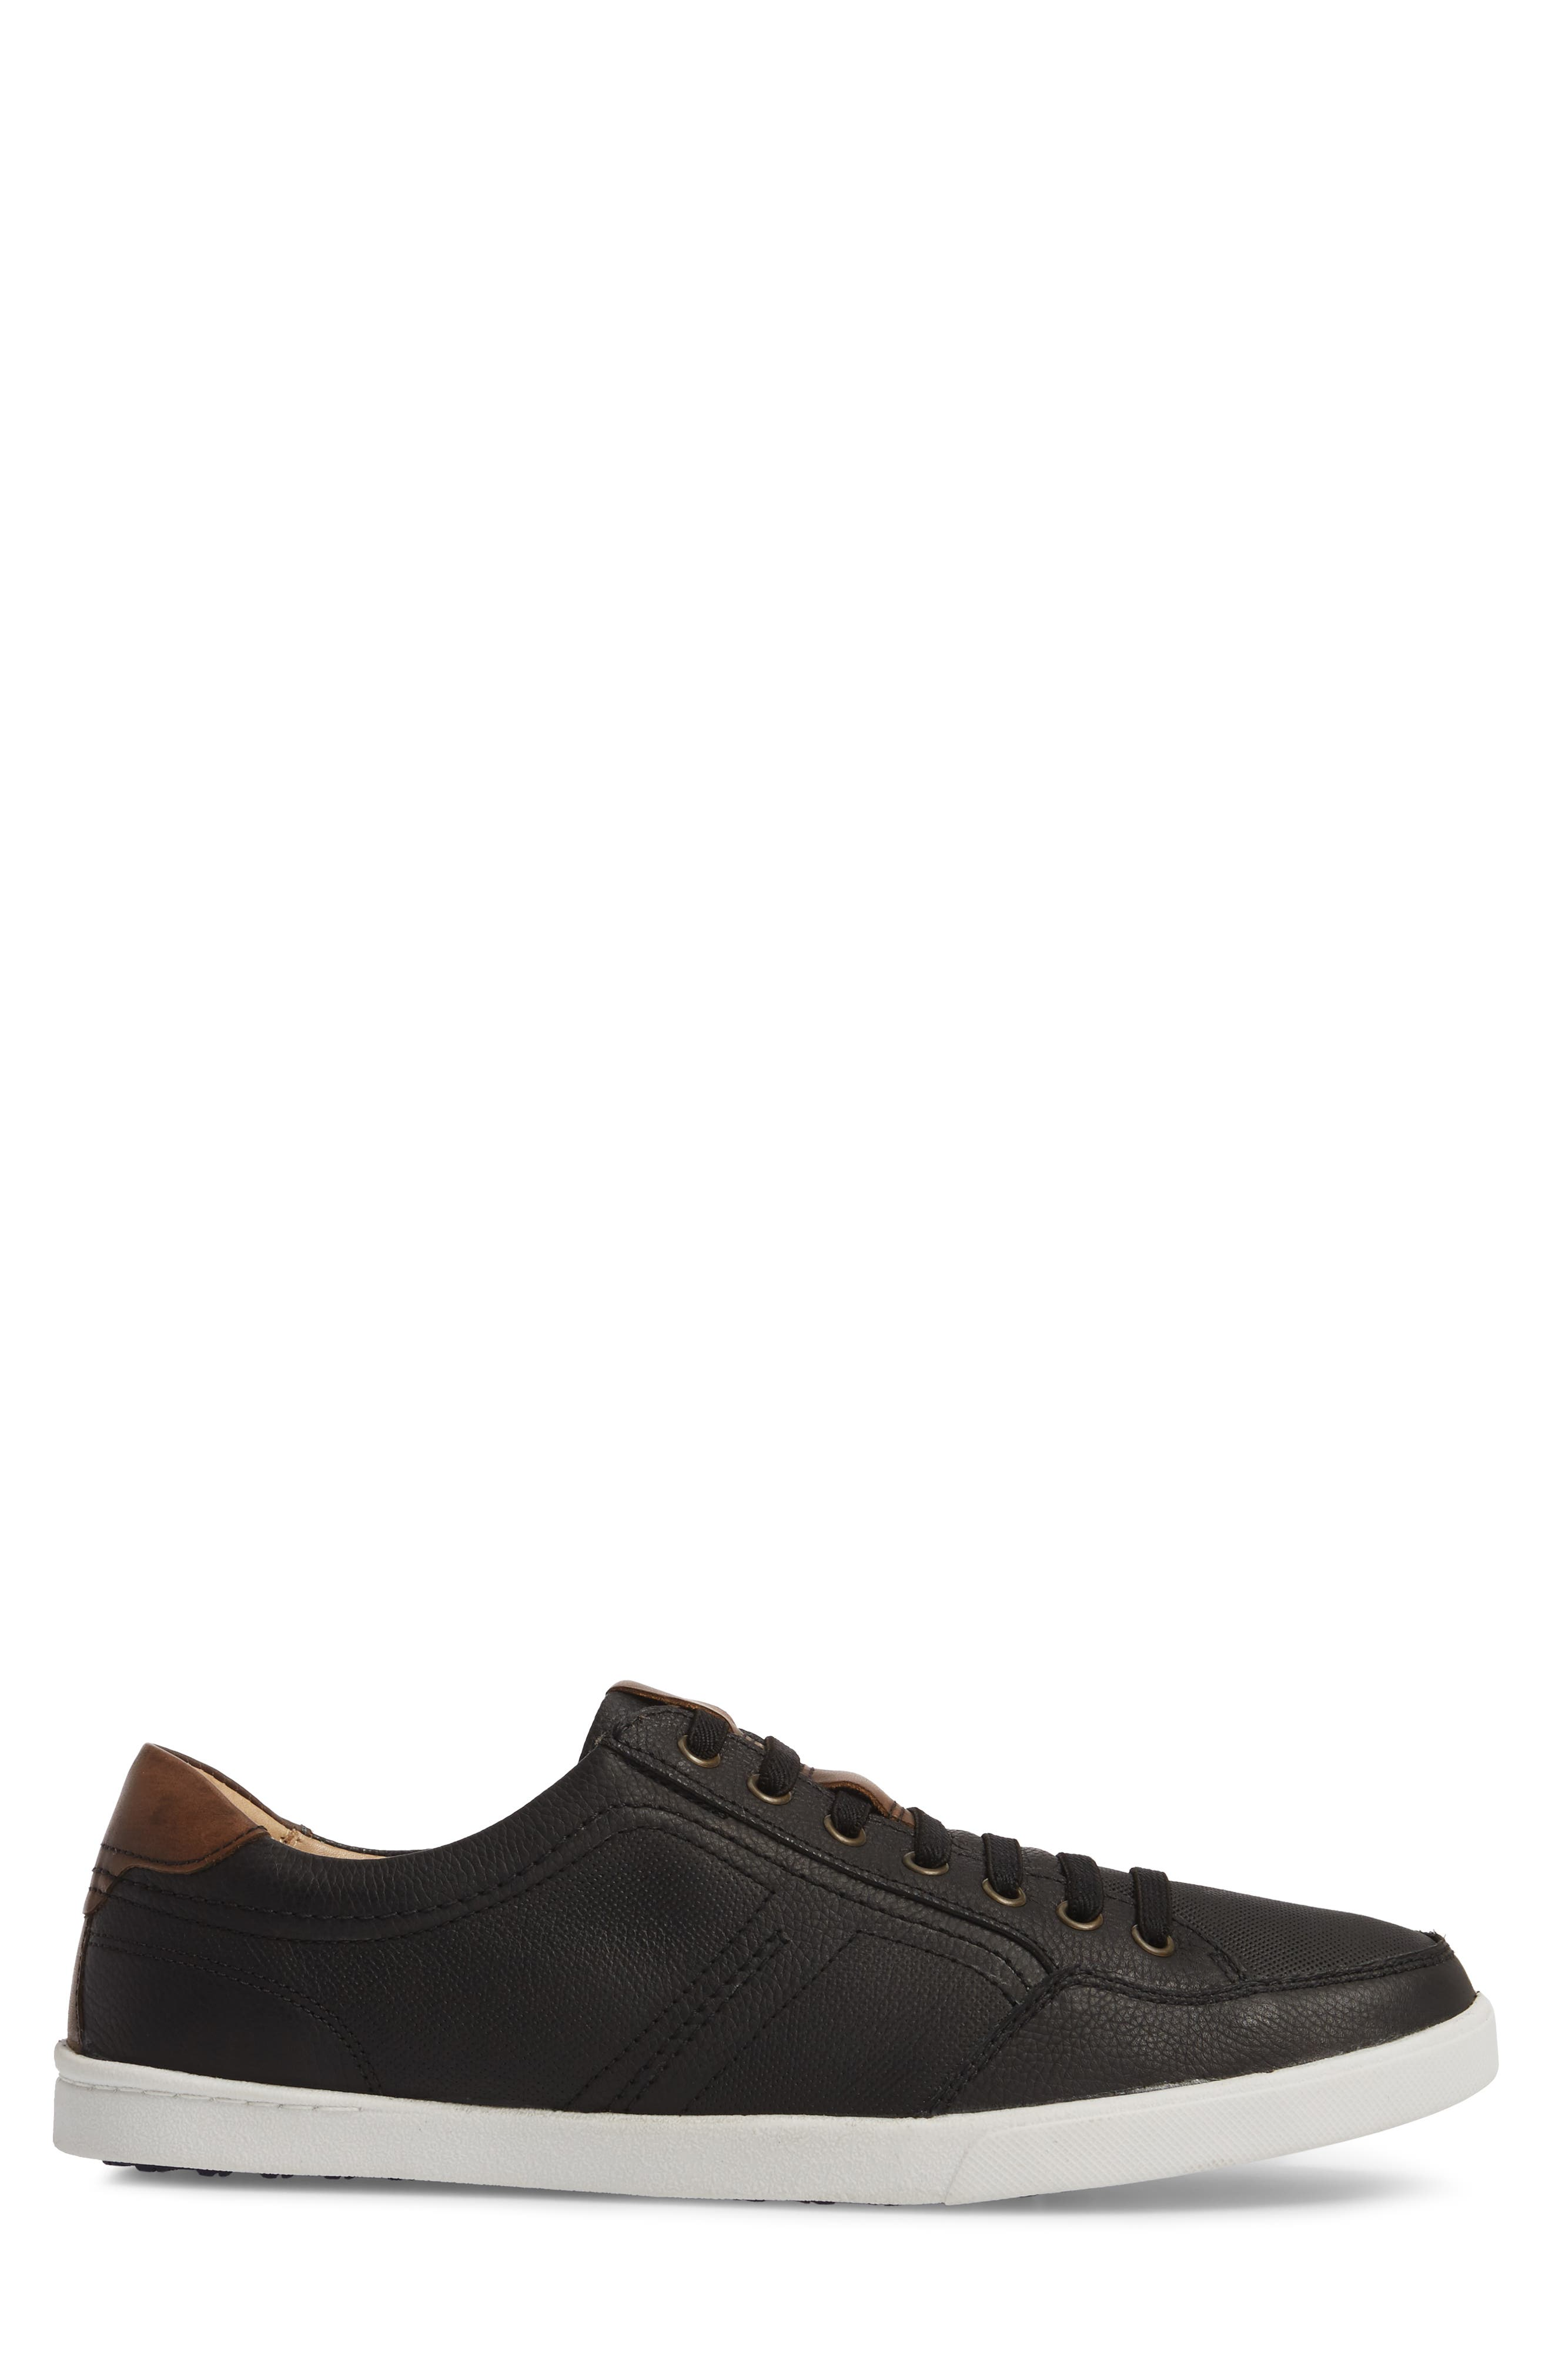 Quinton Textured Low Top Sneaker,                             Alternate thumbnail 3, color,                             BLACK LEATHER